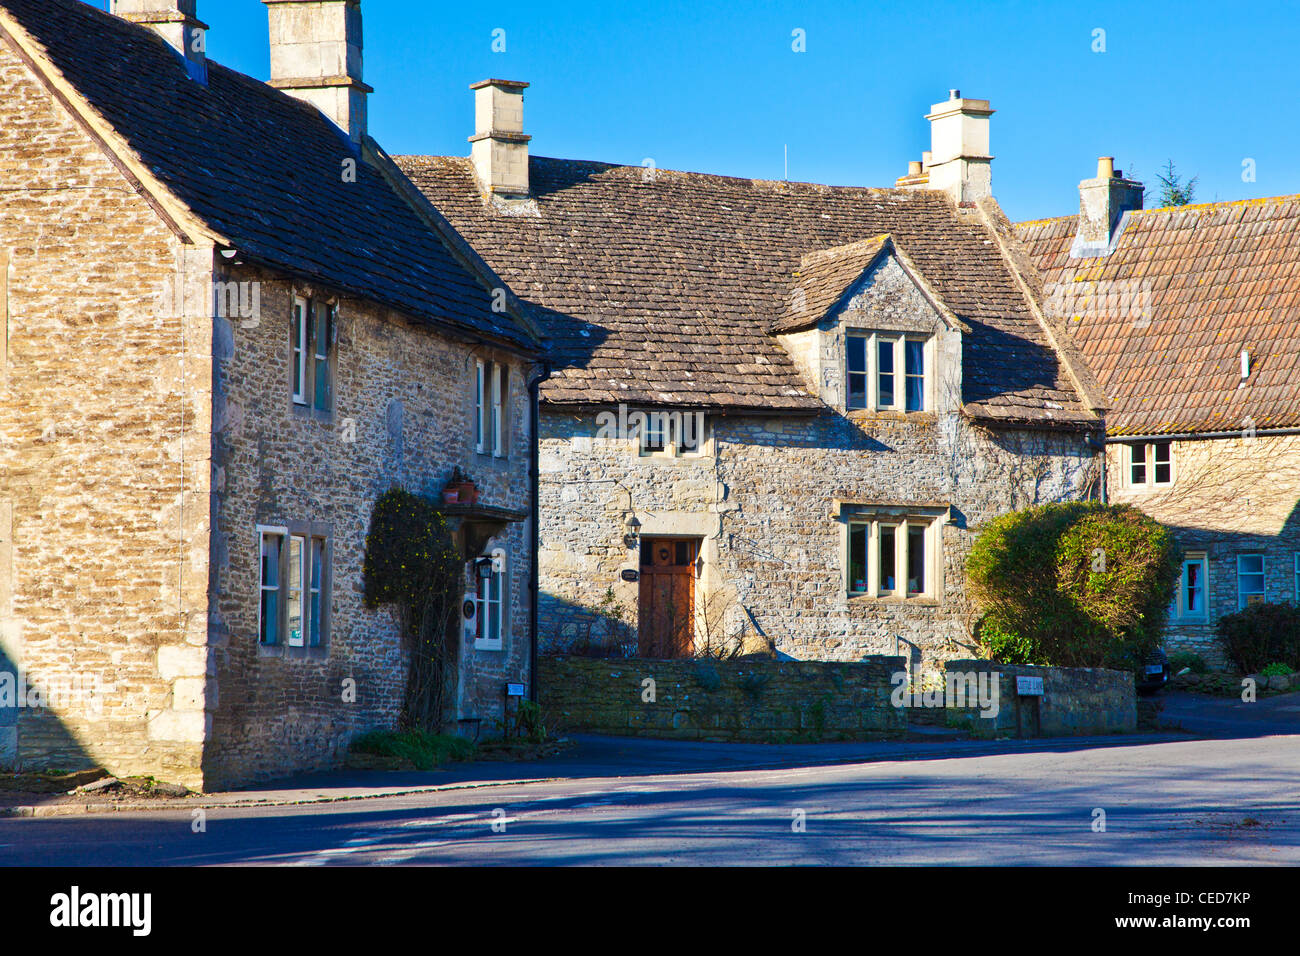 Typical Cotswold stone houses along the road through the English village of Biddestone, Wiltshire, England, UK - Stock Image